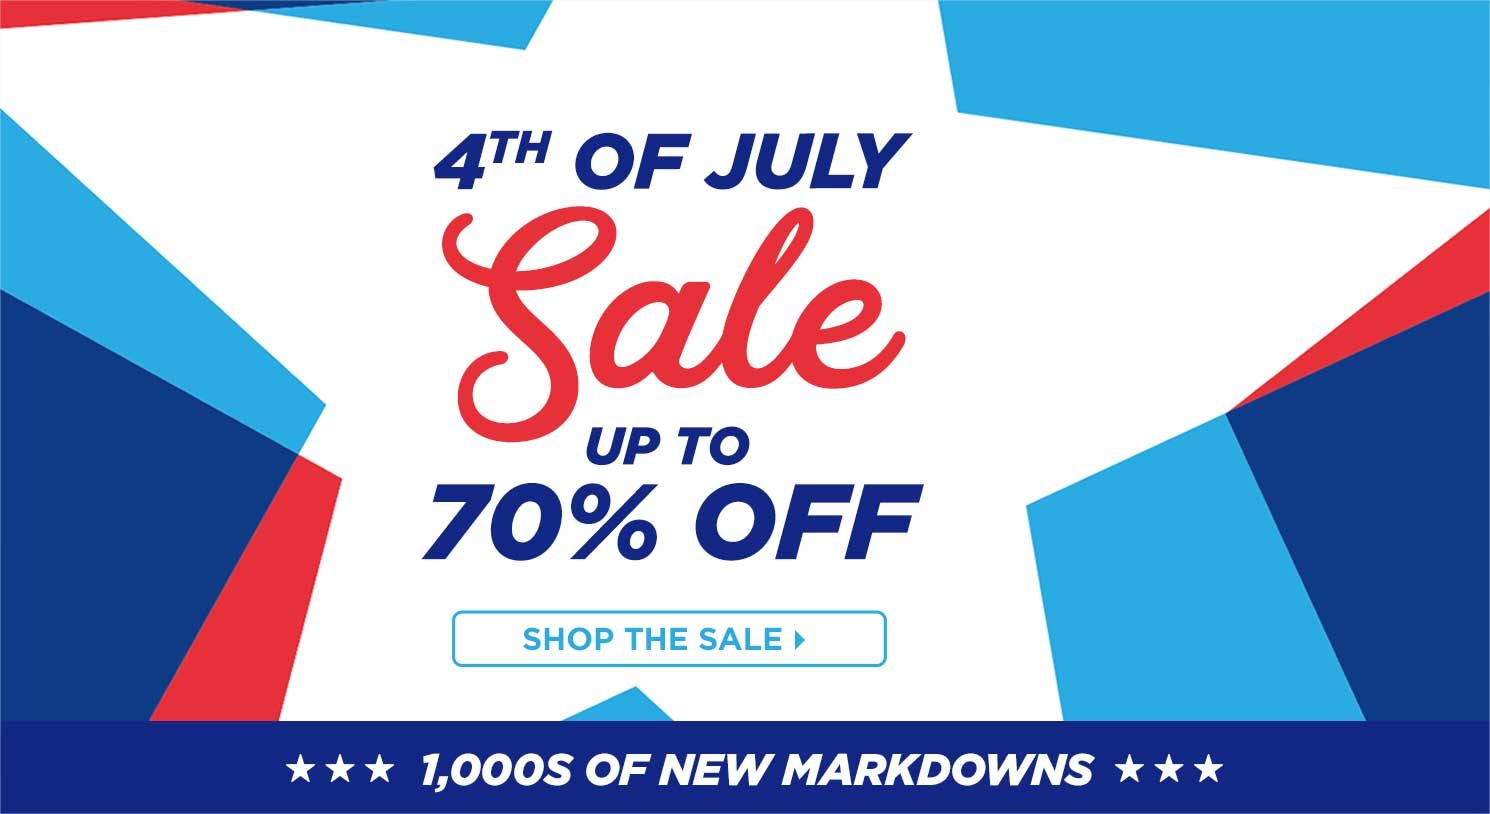 Sitewide Markdowns! July 4th Savings   Up to 70% Off - 1000's of New Markdowns!